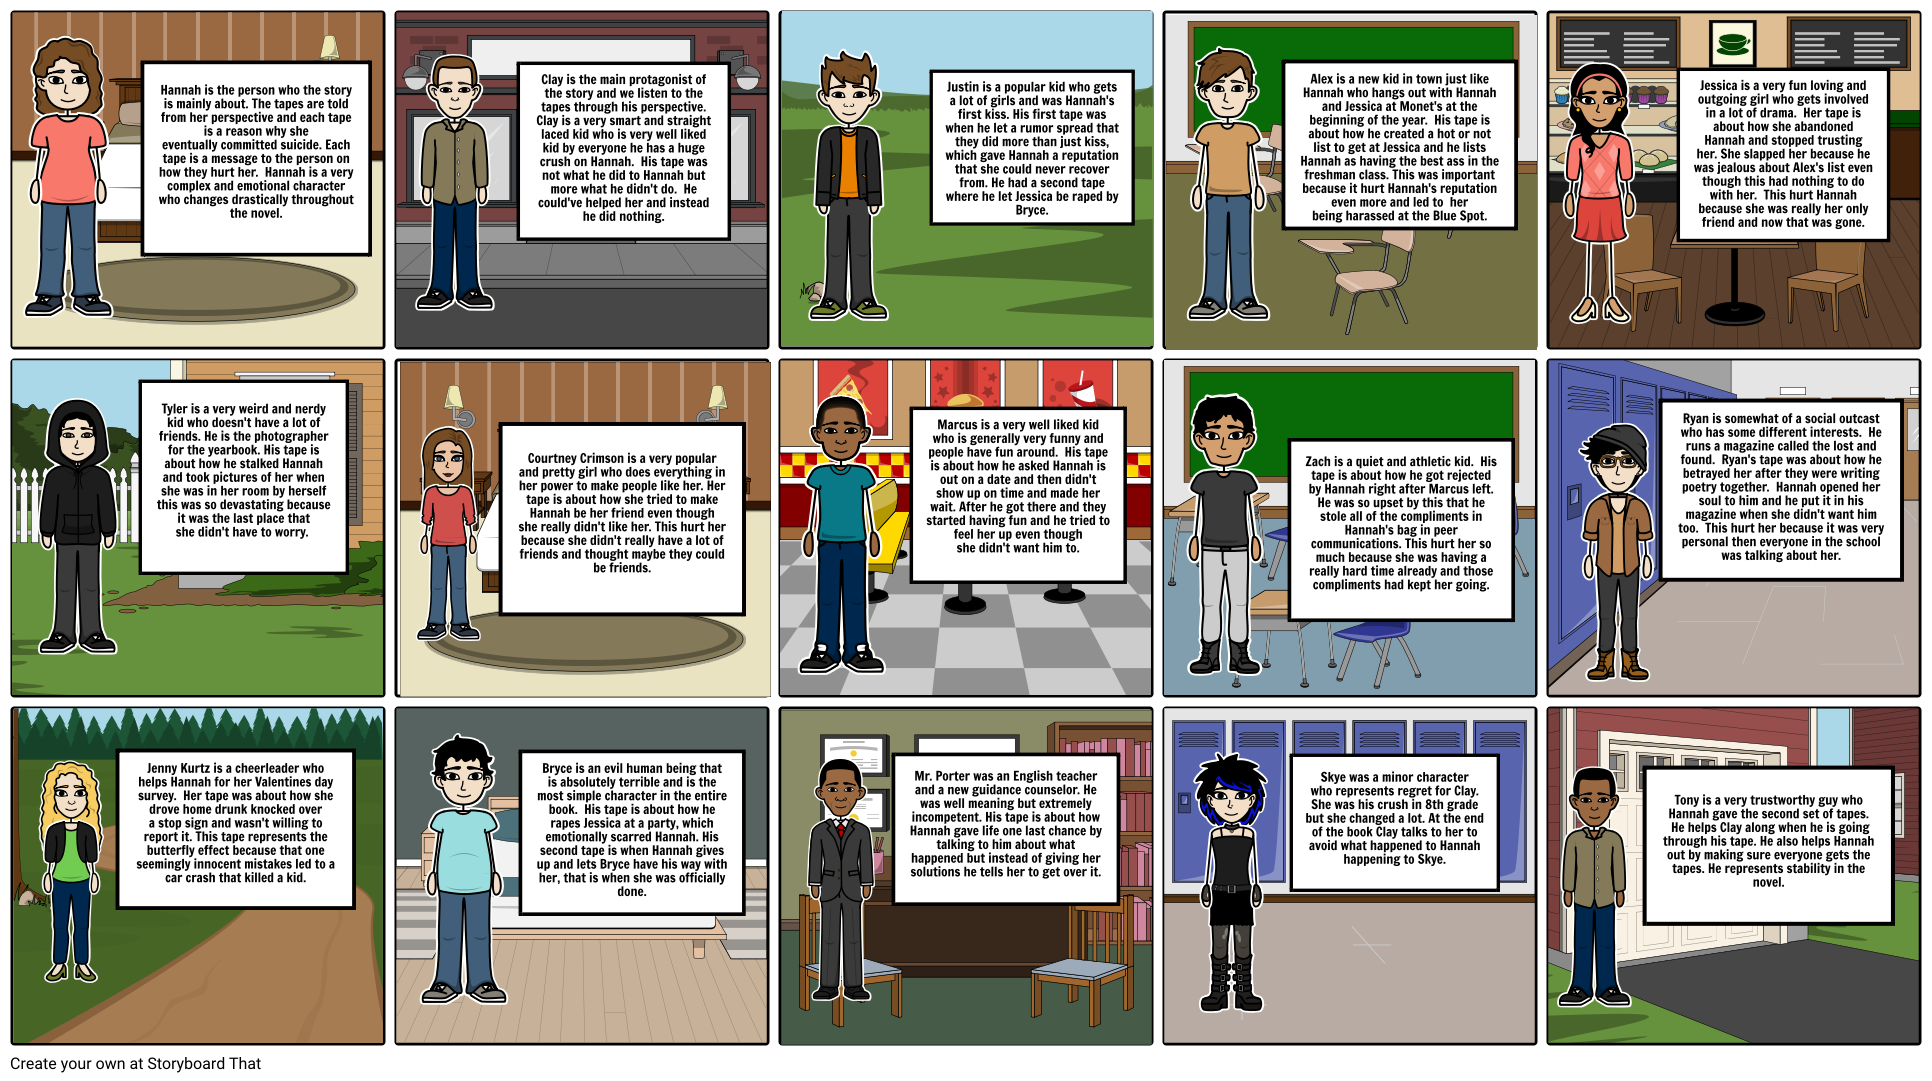 13 reasons why character analysis Storyboard par jackmclane32